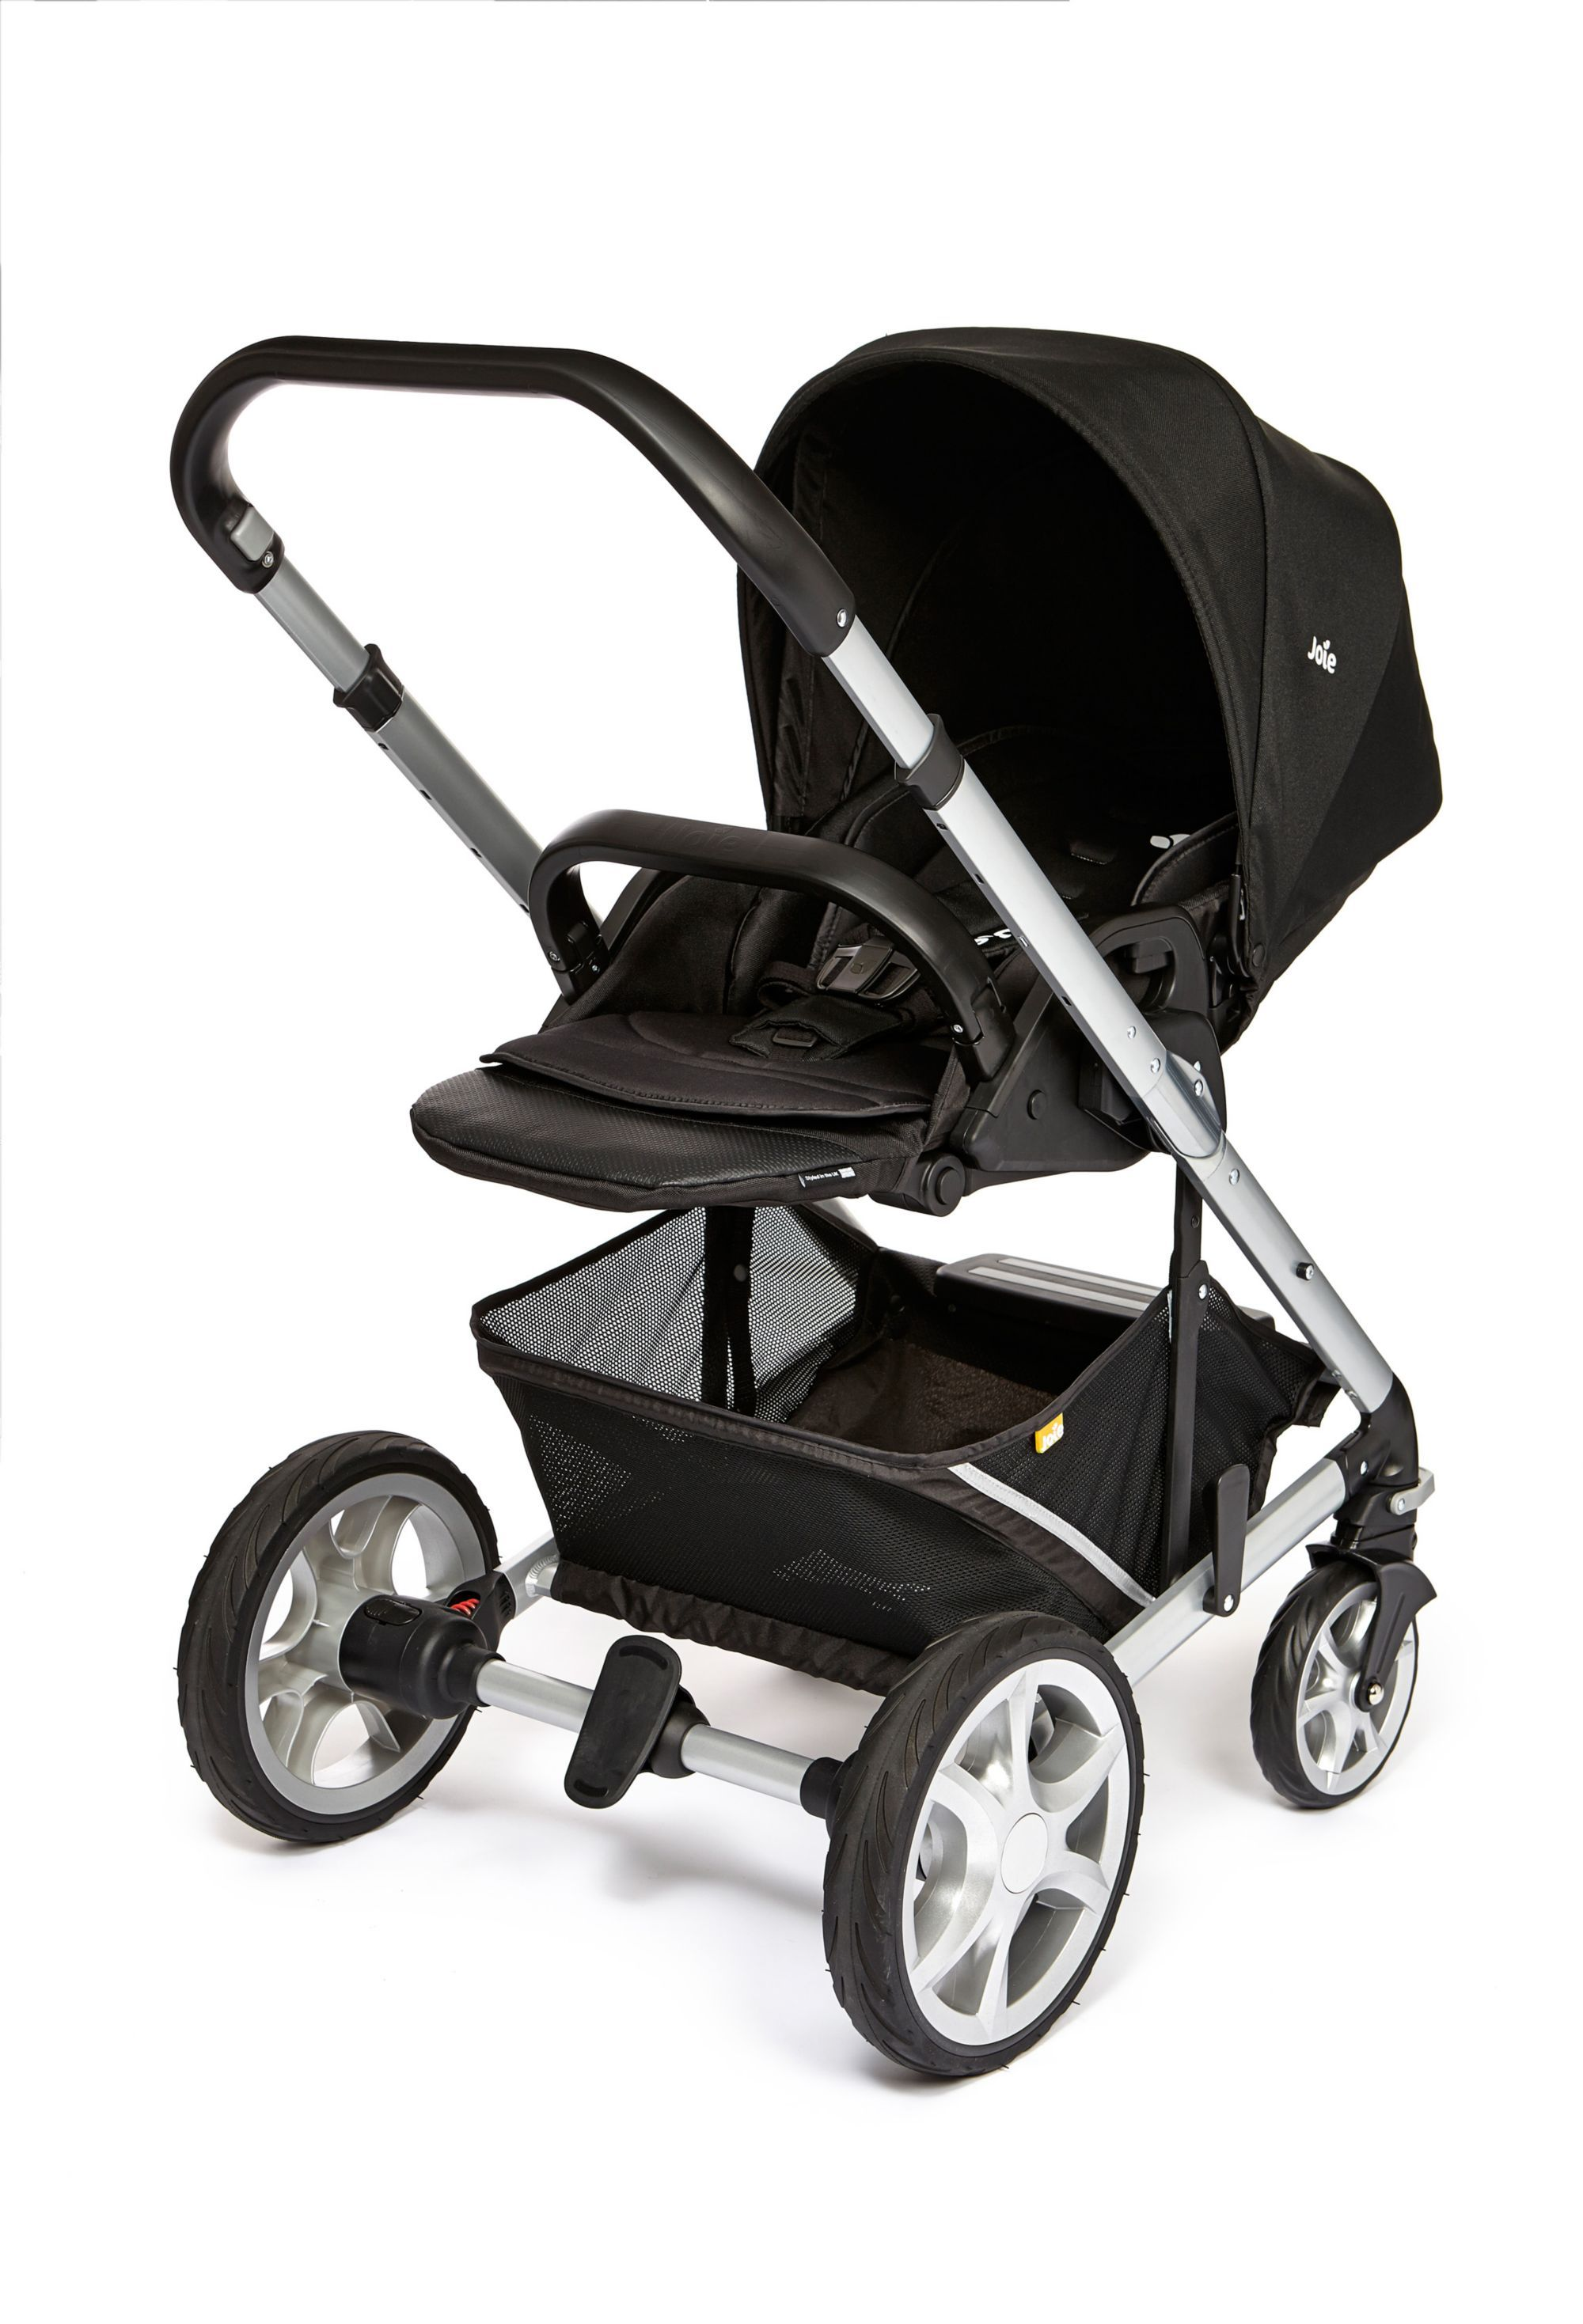 Travel System Joie Chrome Joie Chrome Plus Pushchair Black Carbon New Baby